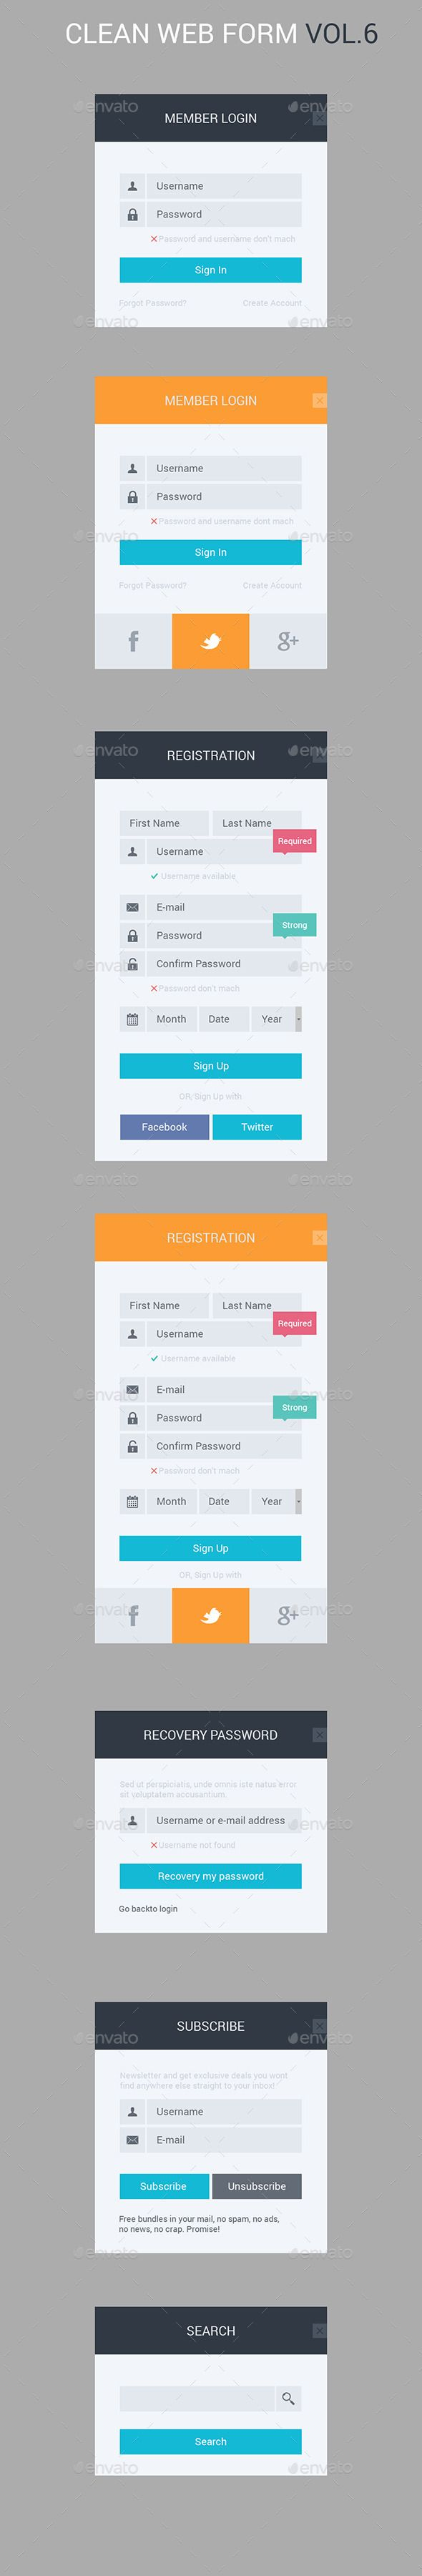 Best Login Form Images On   User Interface Design